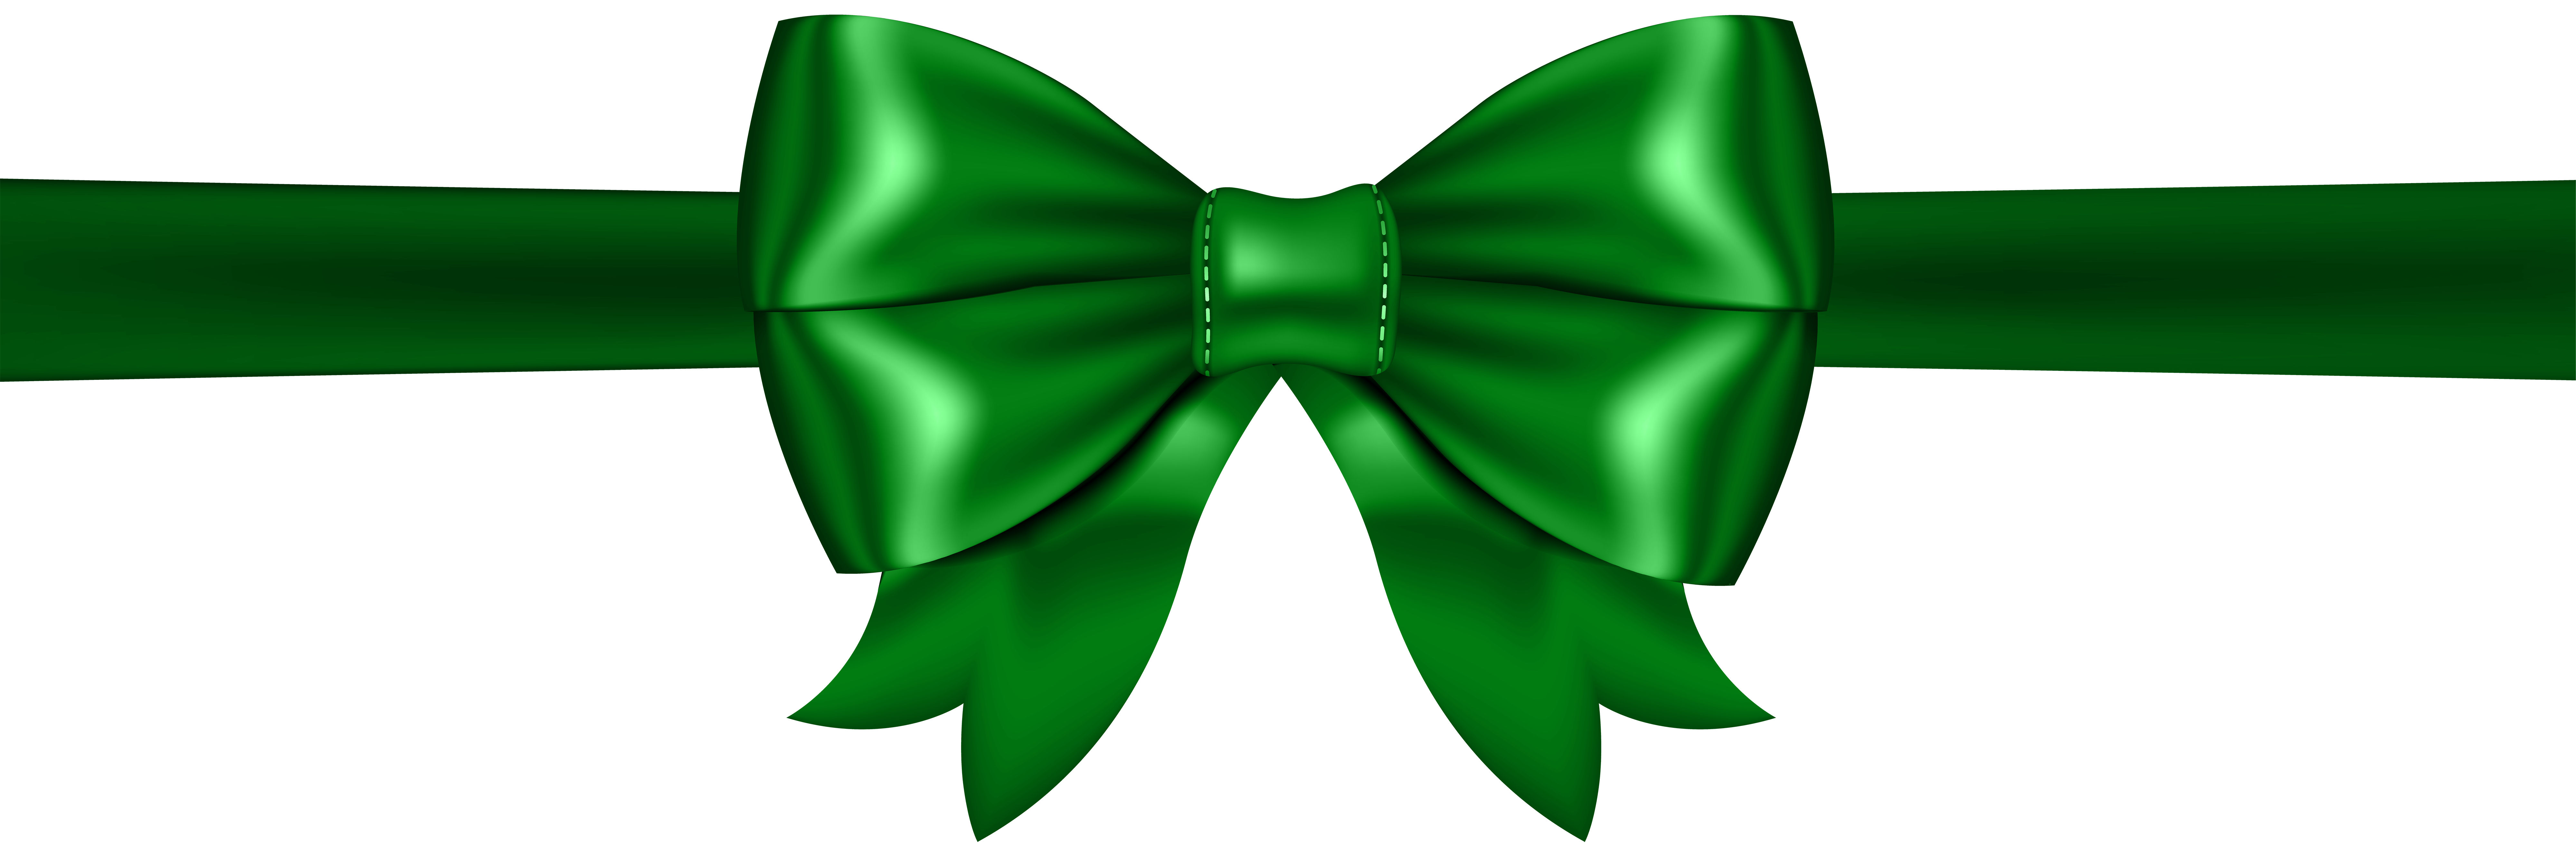 Png clip art gallery. Clipart bow green